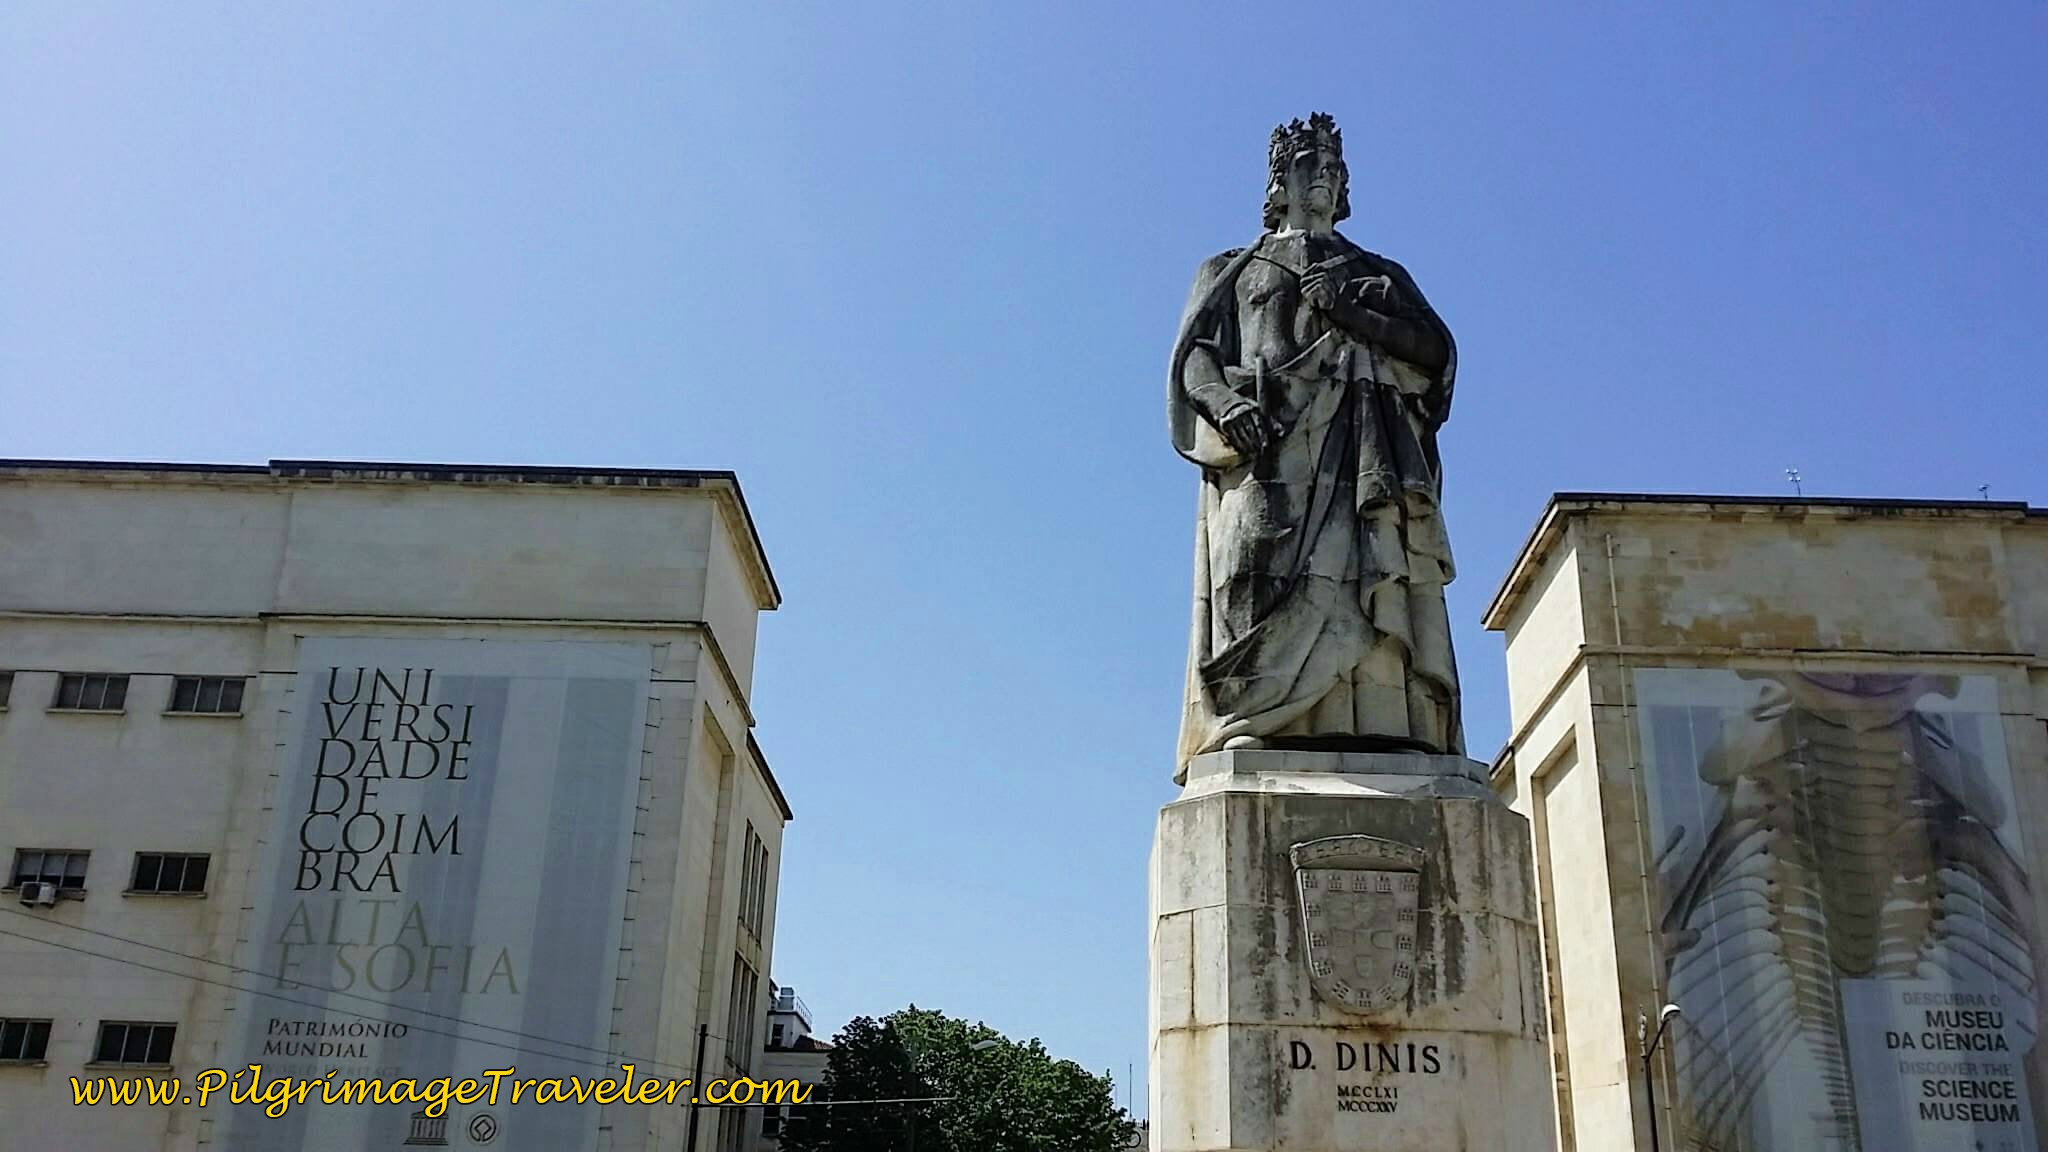 Statue of King D. Dinis, Founder of the University of Coimbra